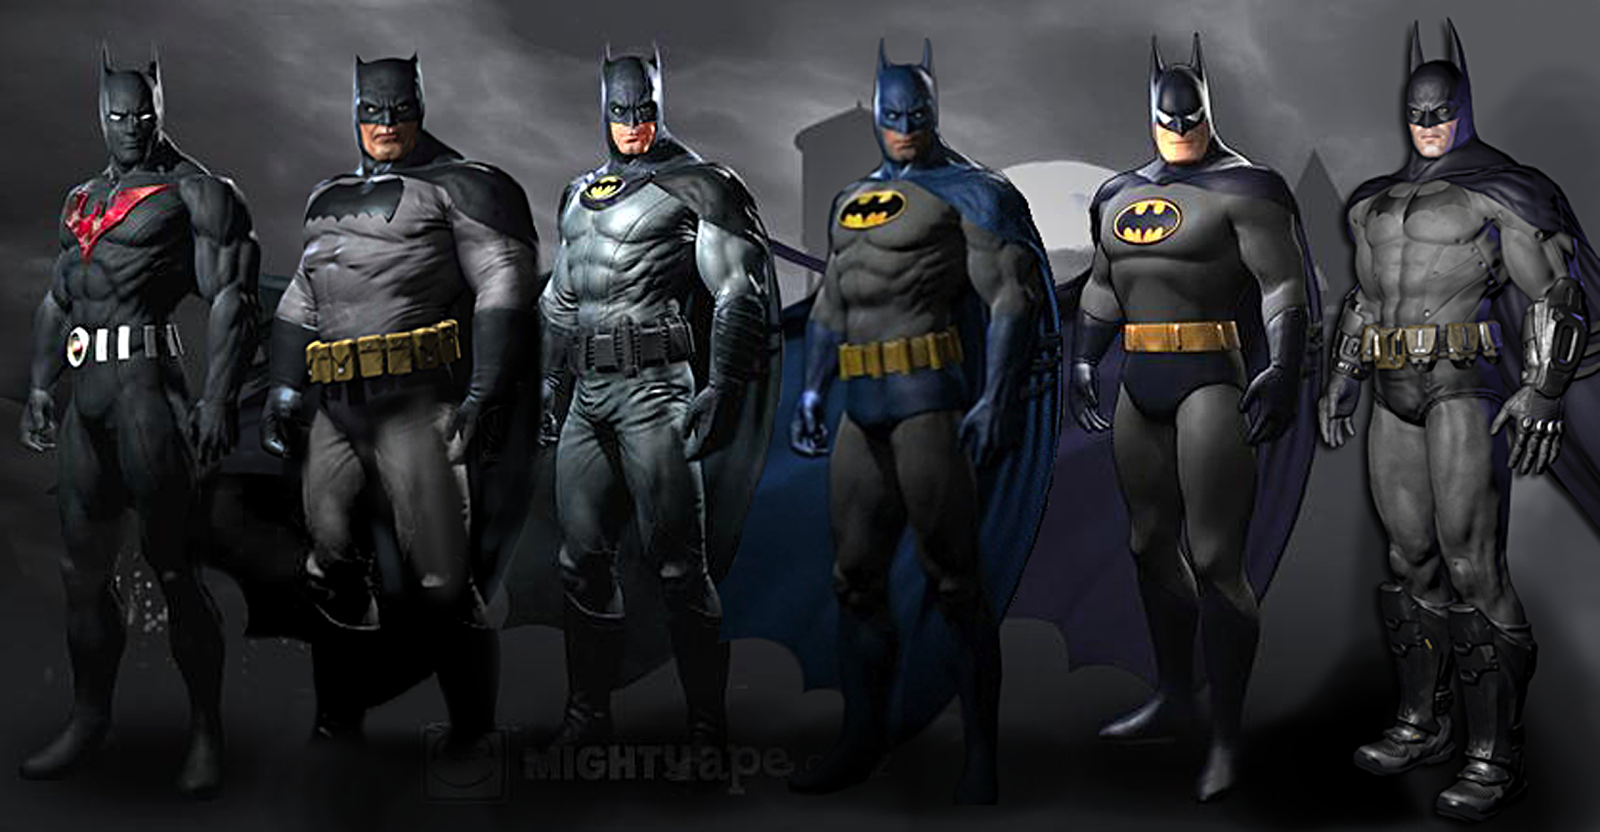 http://3.bp.blogspot.com/-hHbCpBNvm54/Ttapx4hYvGI/AAAAAAAACe4/IooTWMRd1MQ/s1600/batman+arkham+city+all+costumes+skin+dark+knight+rises+3d+character+design+concept+art+video+game+dc+comics+new+52+comic+release+batman+beyond+2012+movie.png